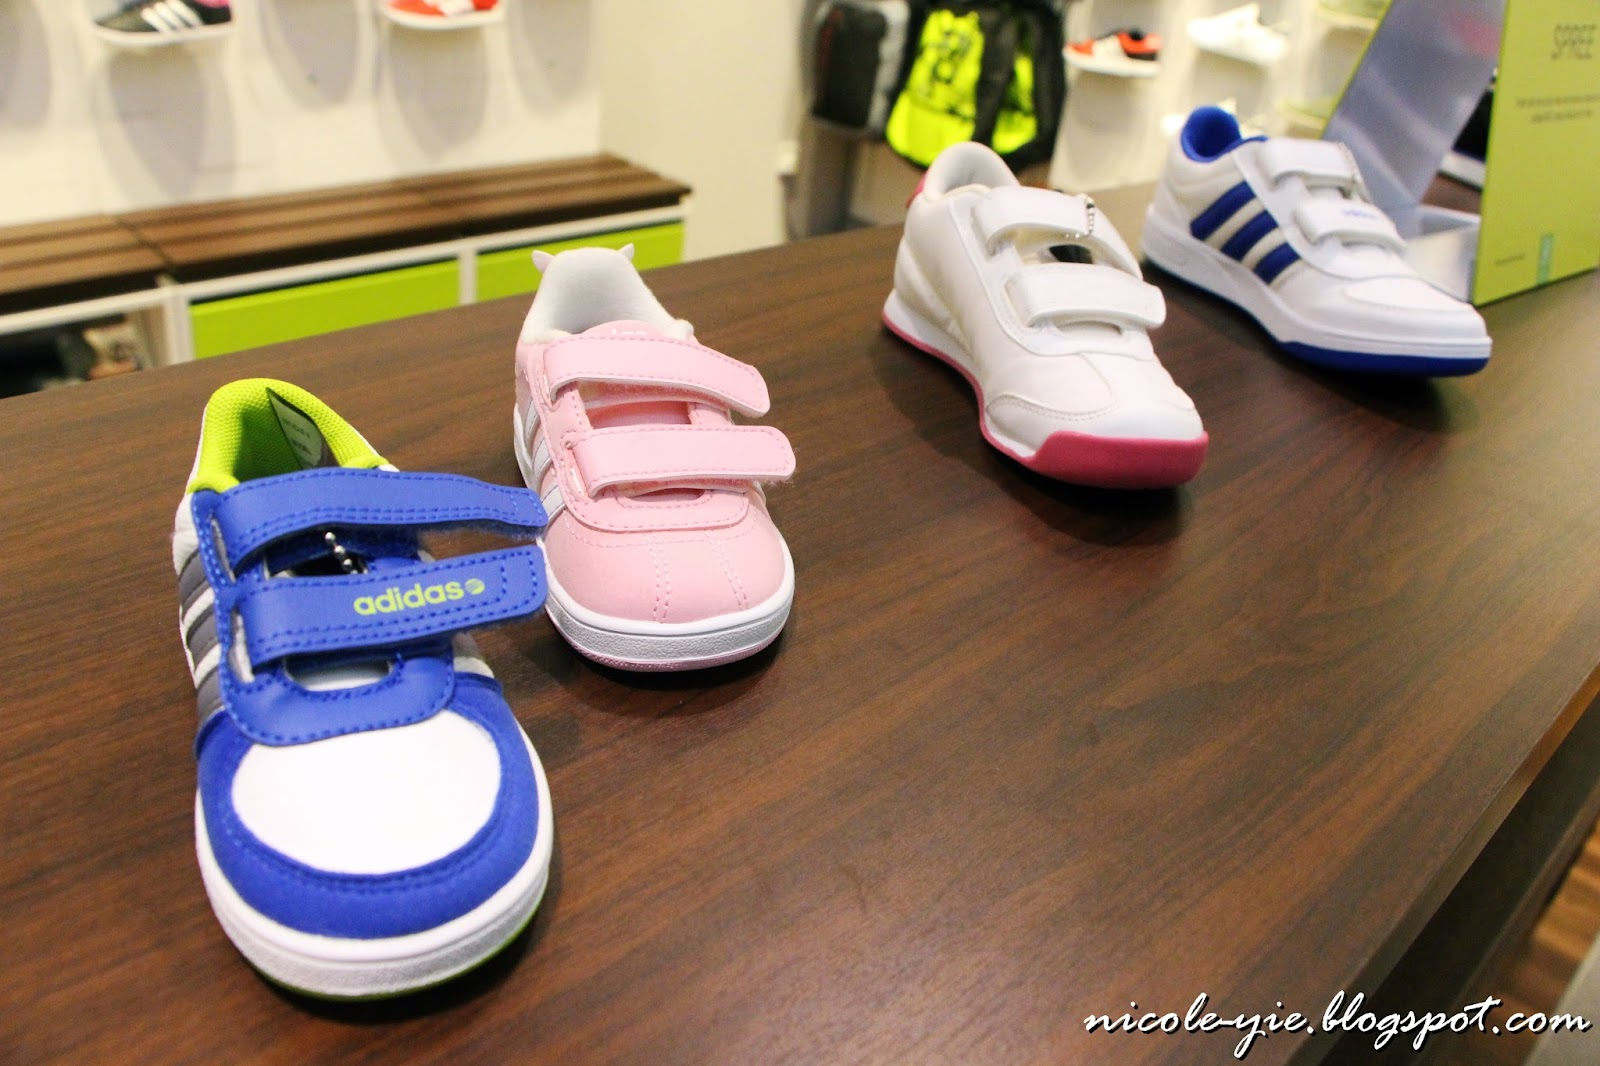 Look at the kids' shoes! How adorable! Especially after seeing the adults'  one!